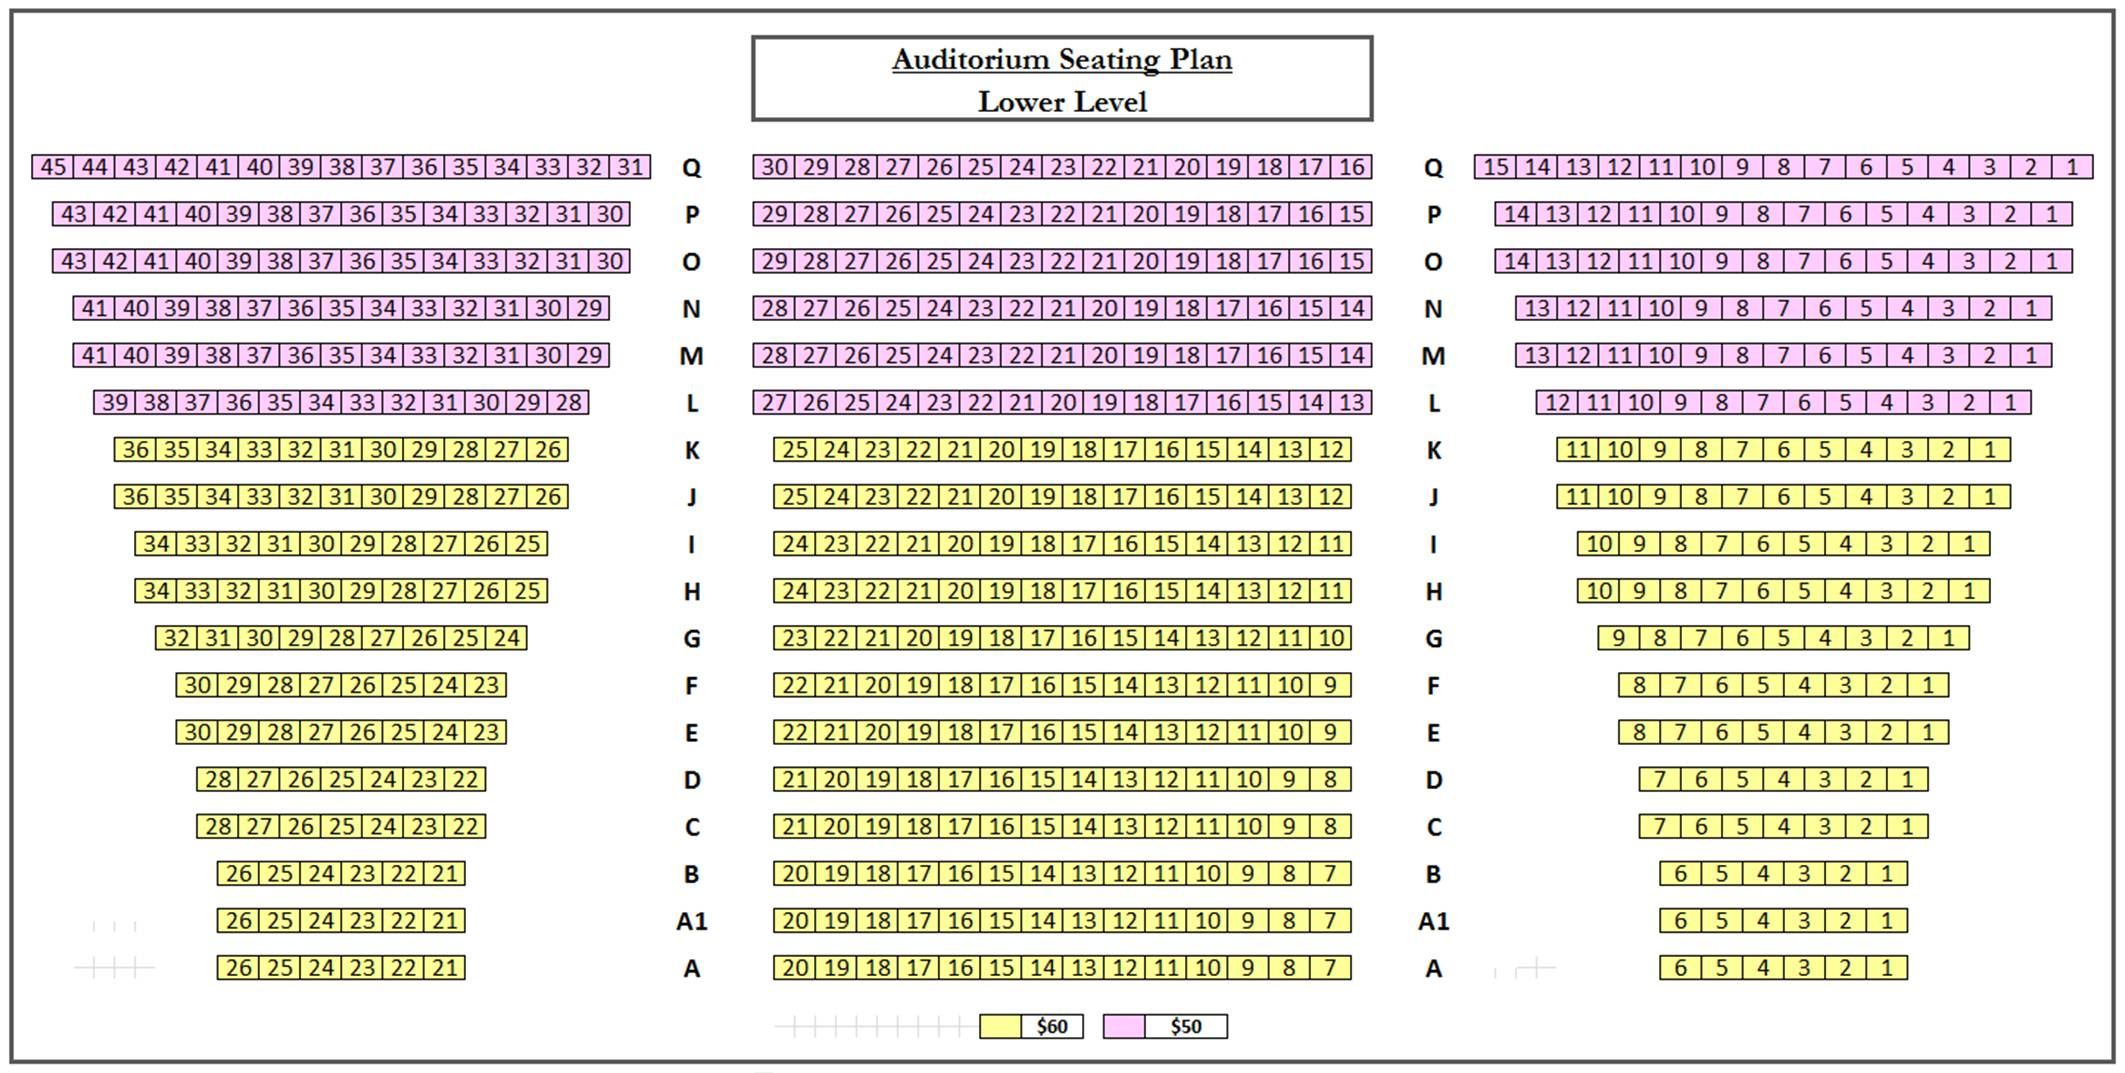 Oi Apelpismenoi Seating Plan